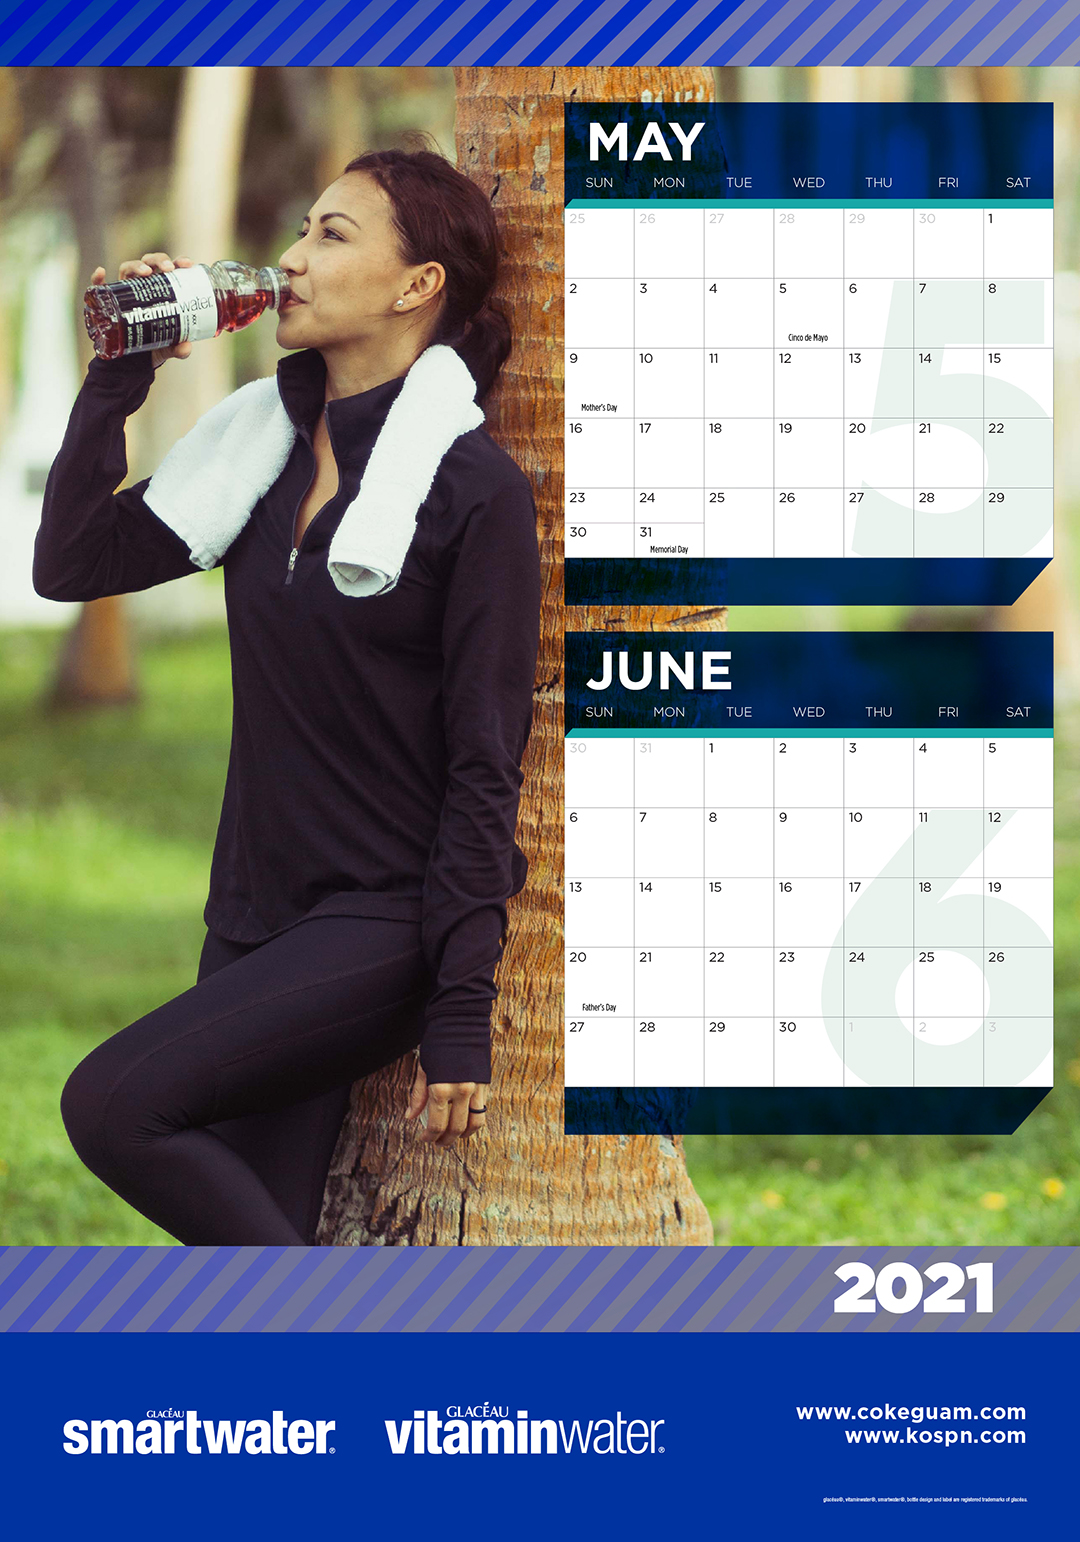 5-20111 Coke 2021 Calendar JAN-JUN